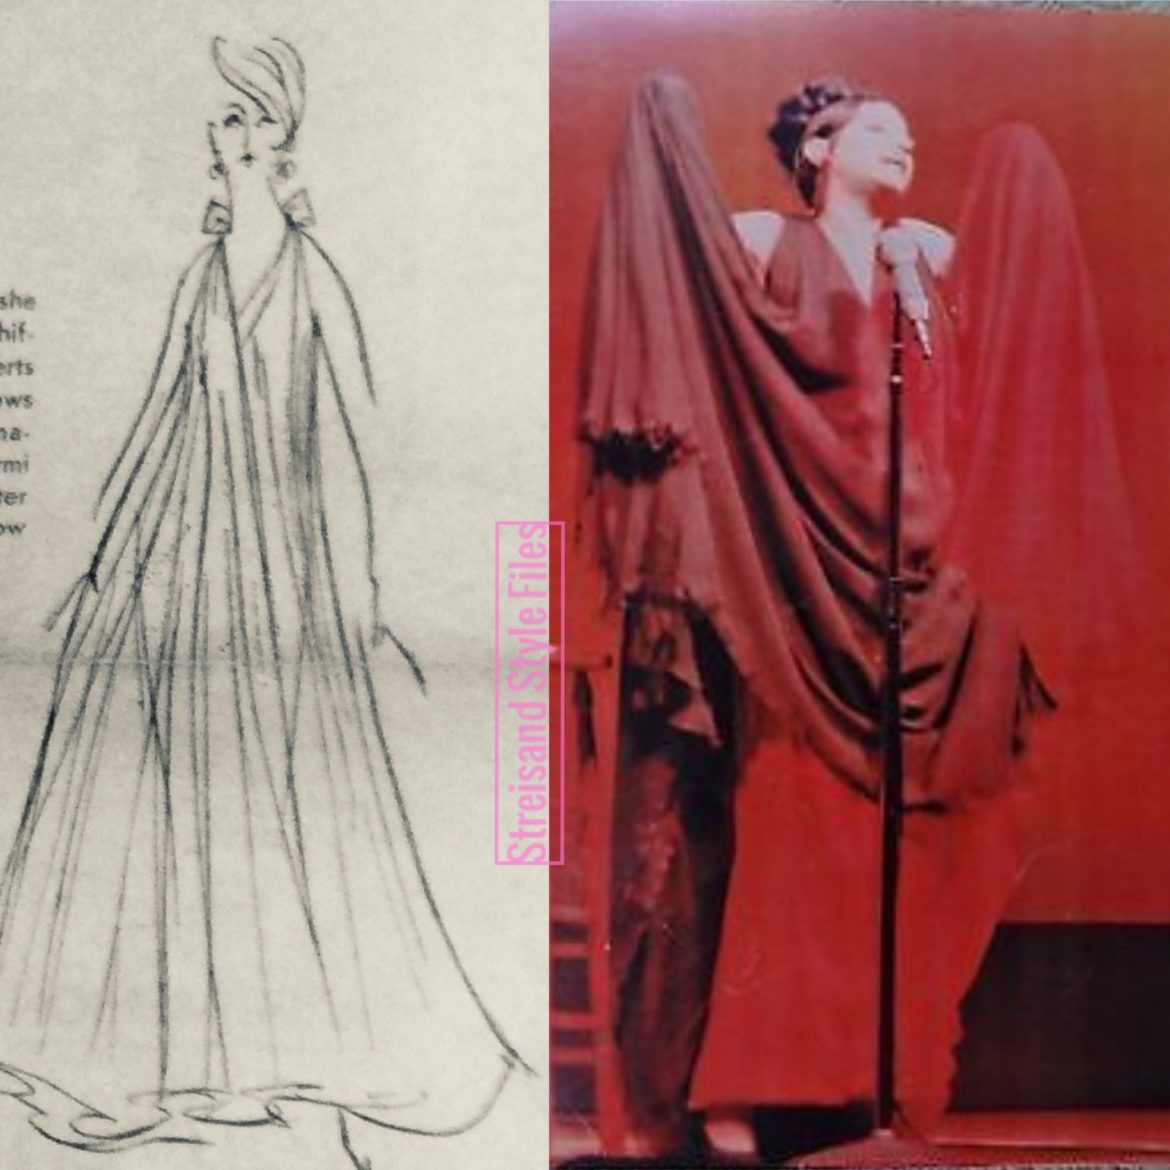 Sarmi chiffon gown and Kenneth Jay Lane Earrings for An Evening With Barbra Streisand, 1966